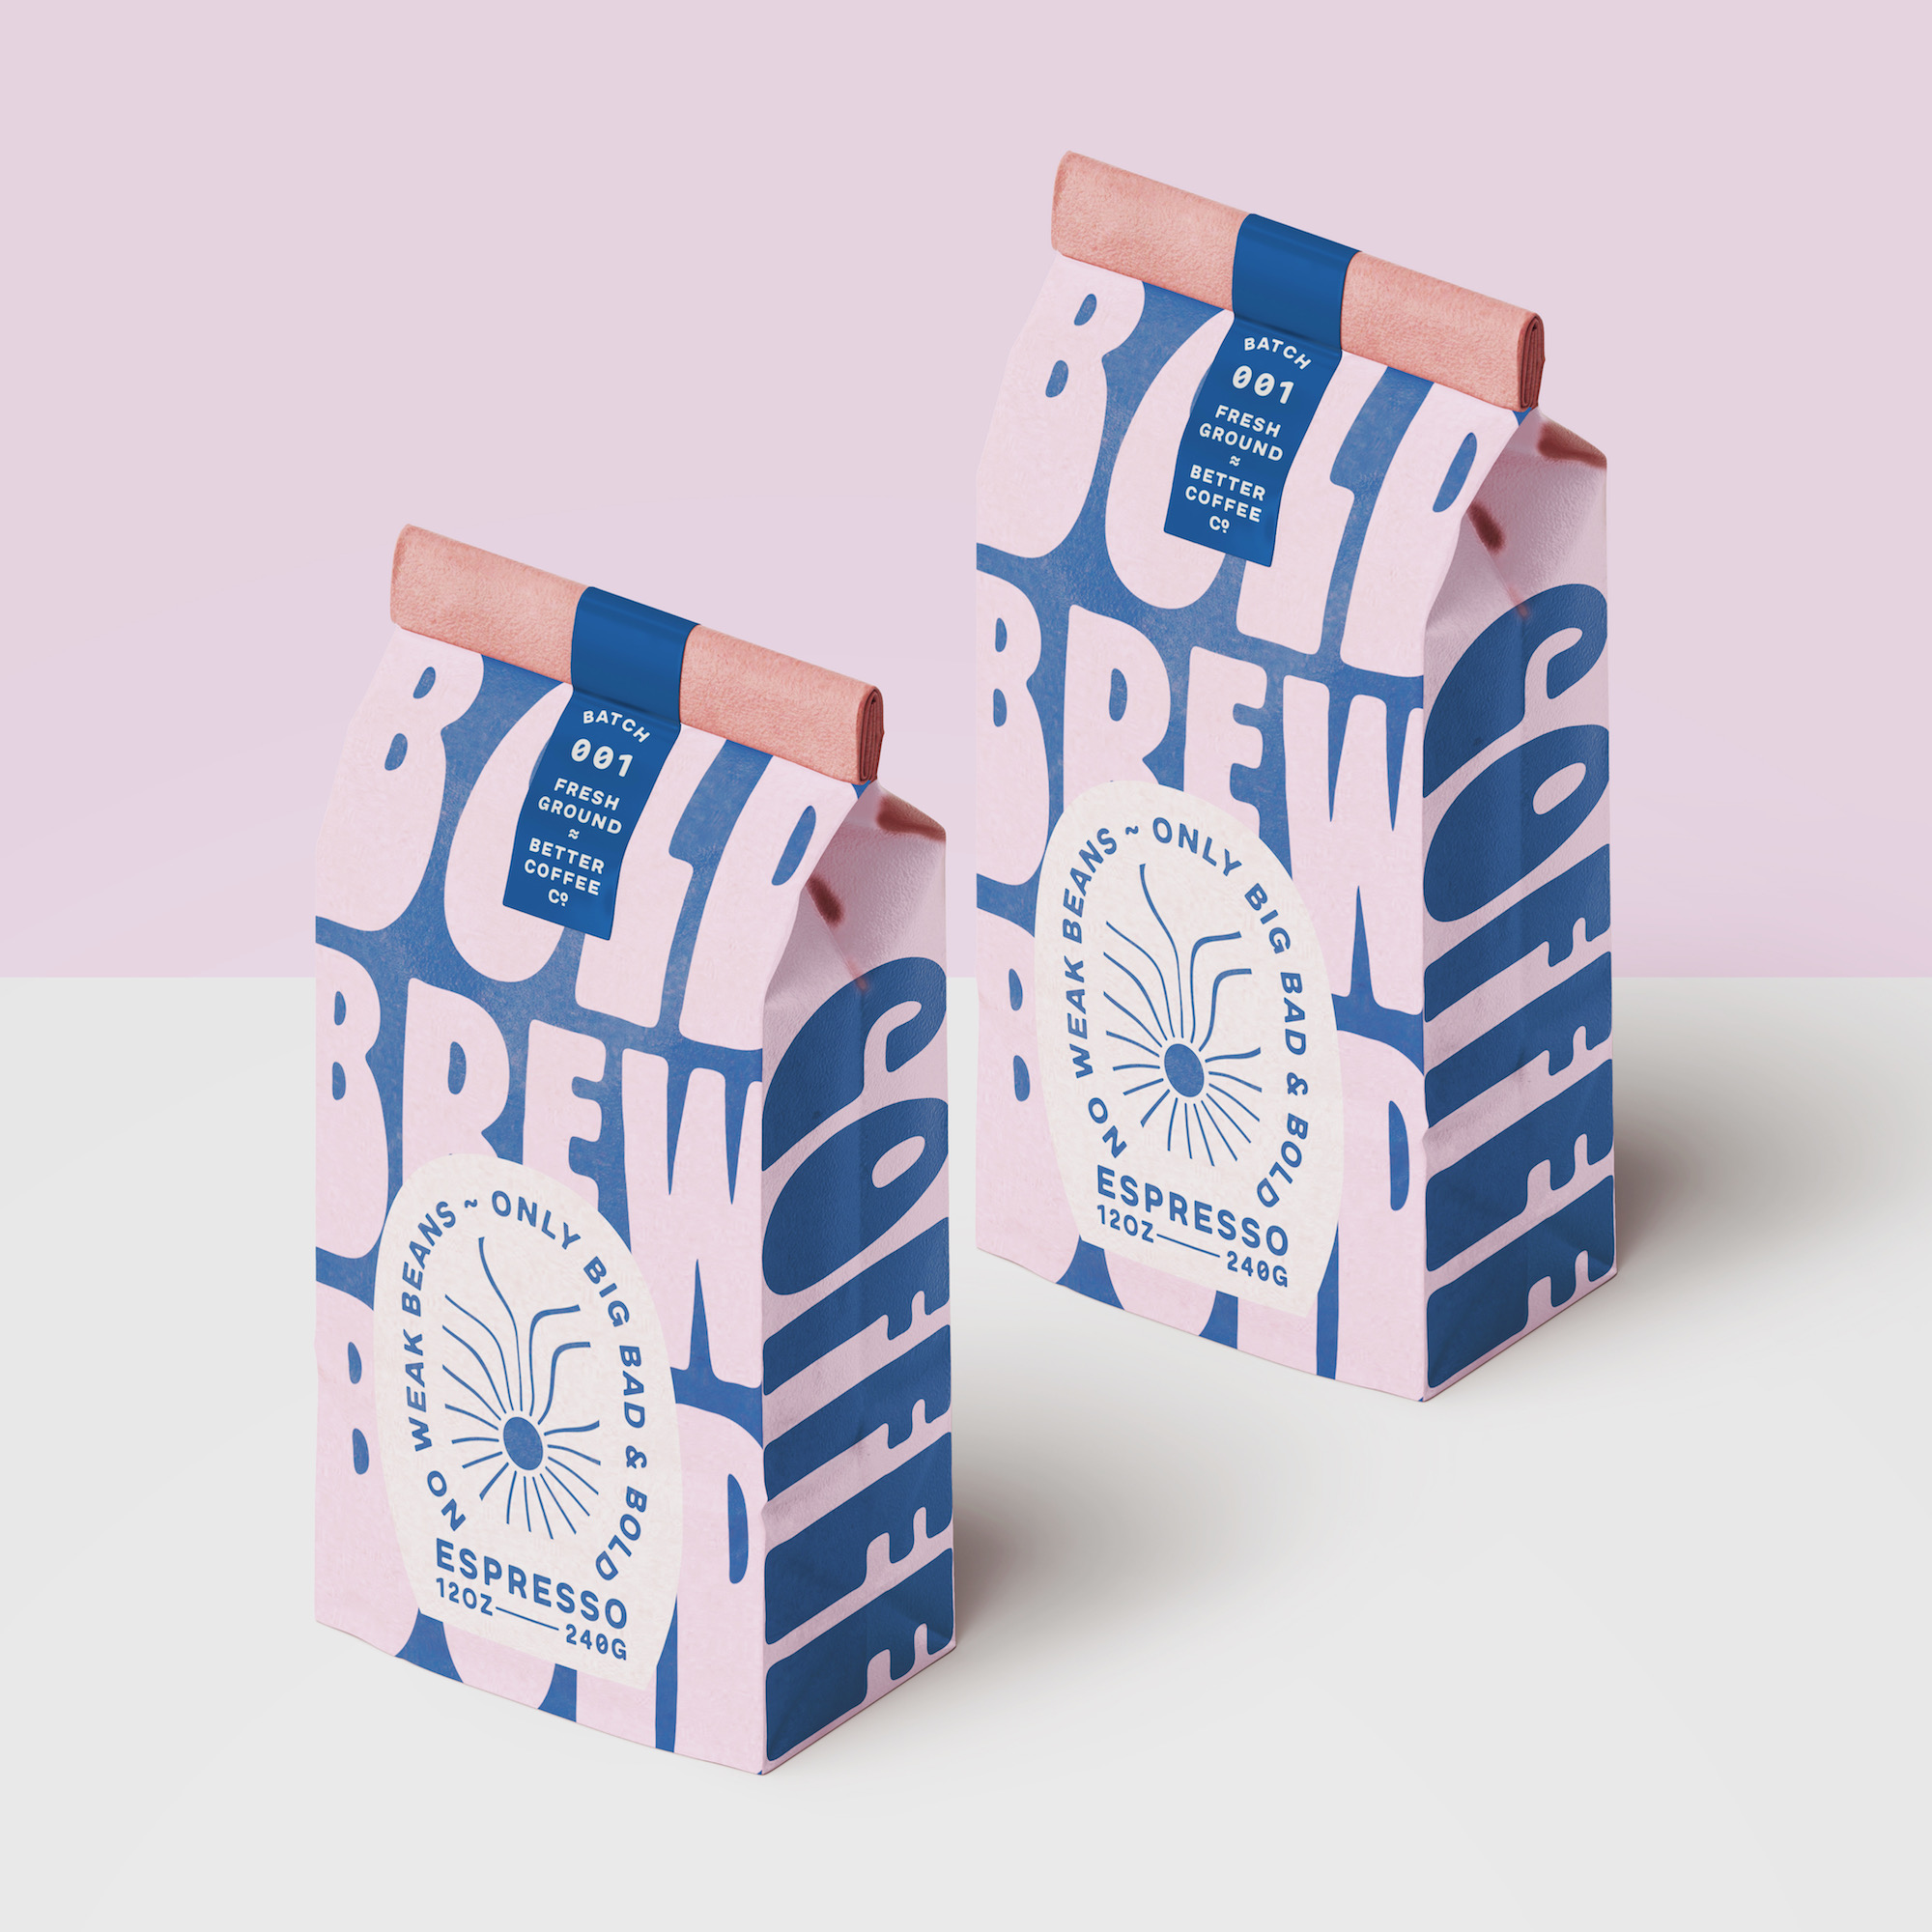 Better Coffee Co. Concept for Branding and Packaging Design